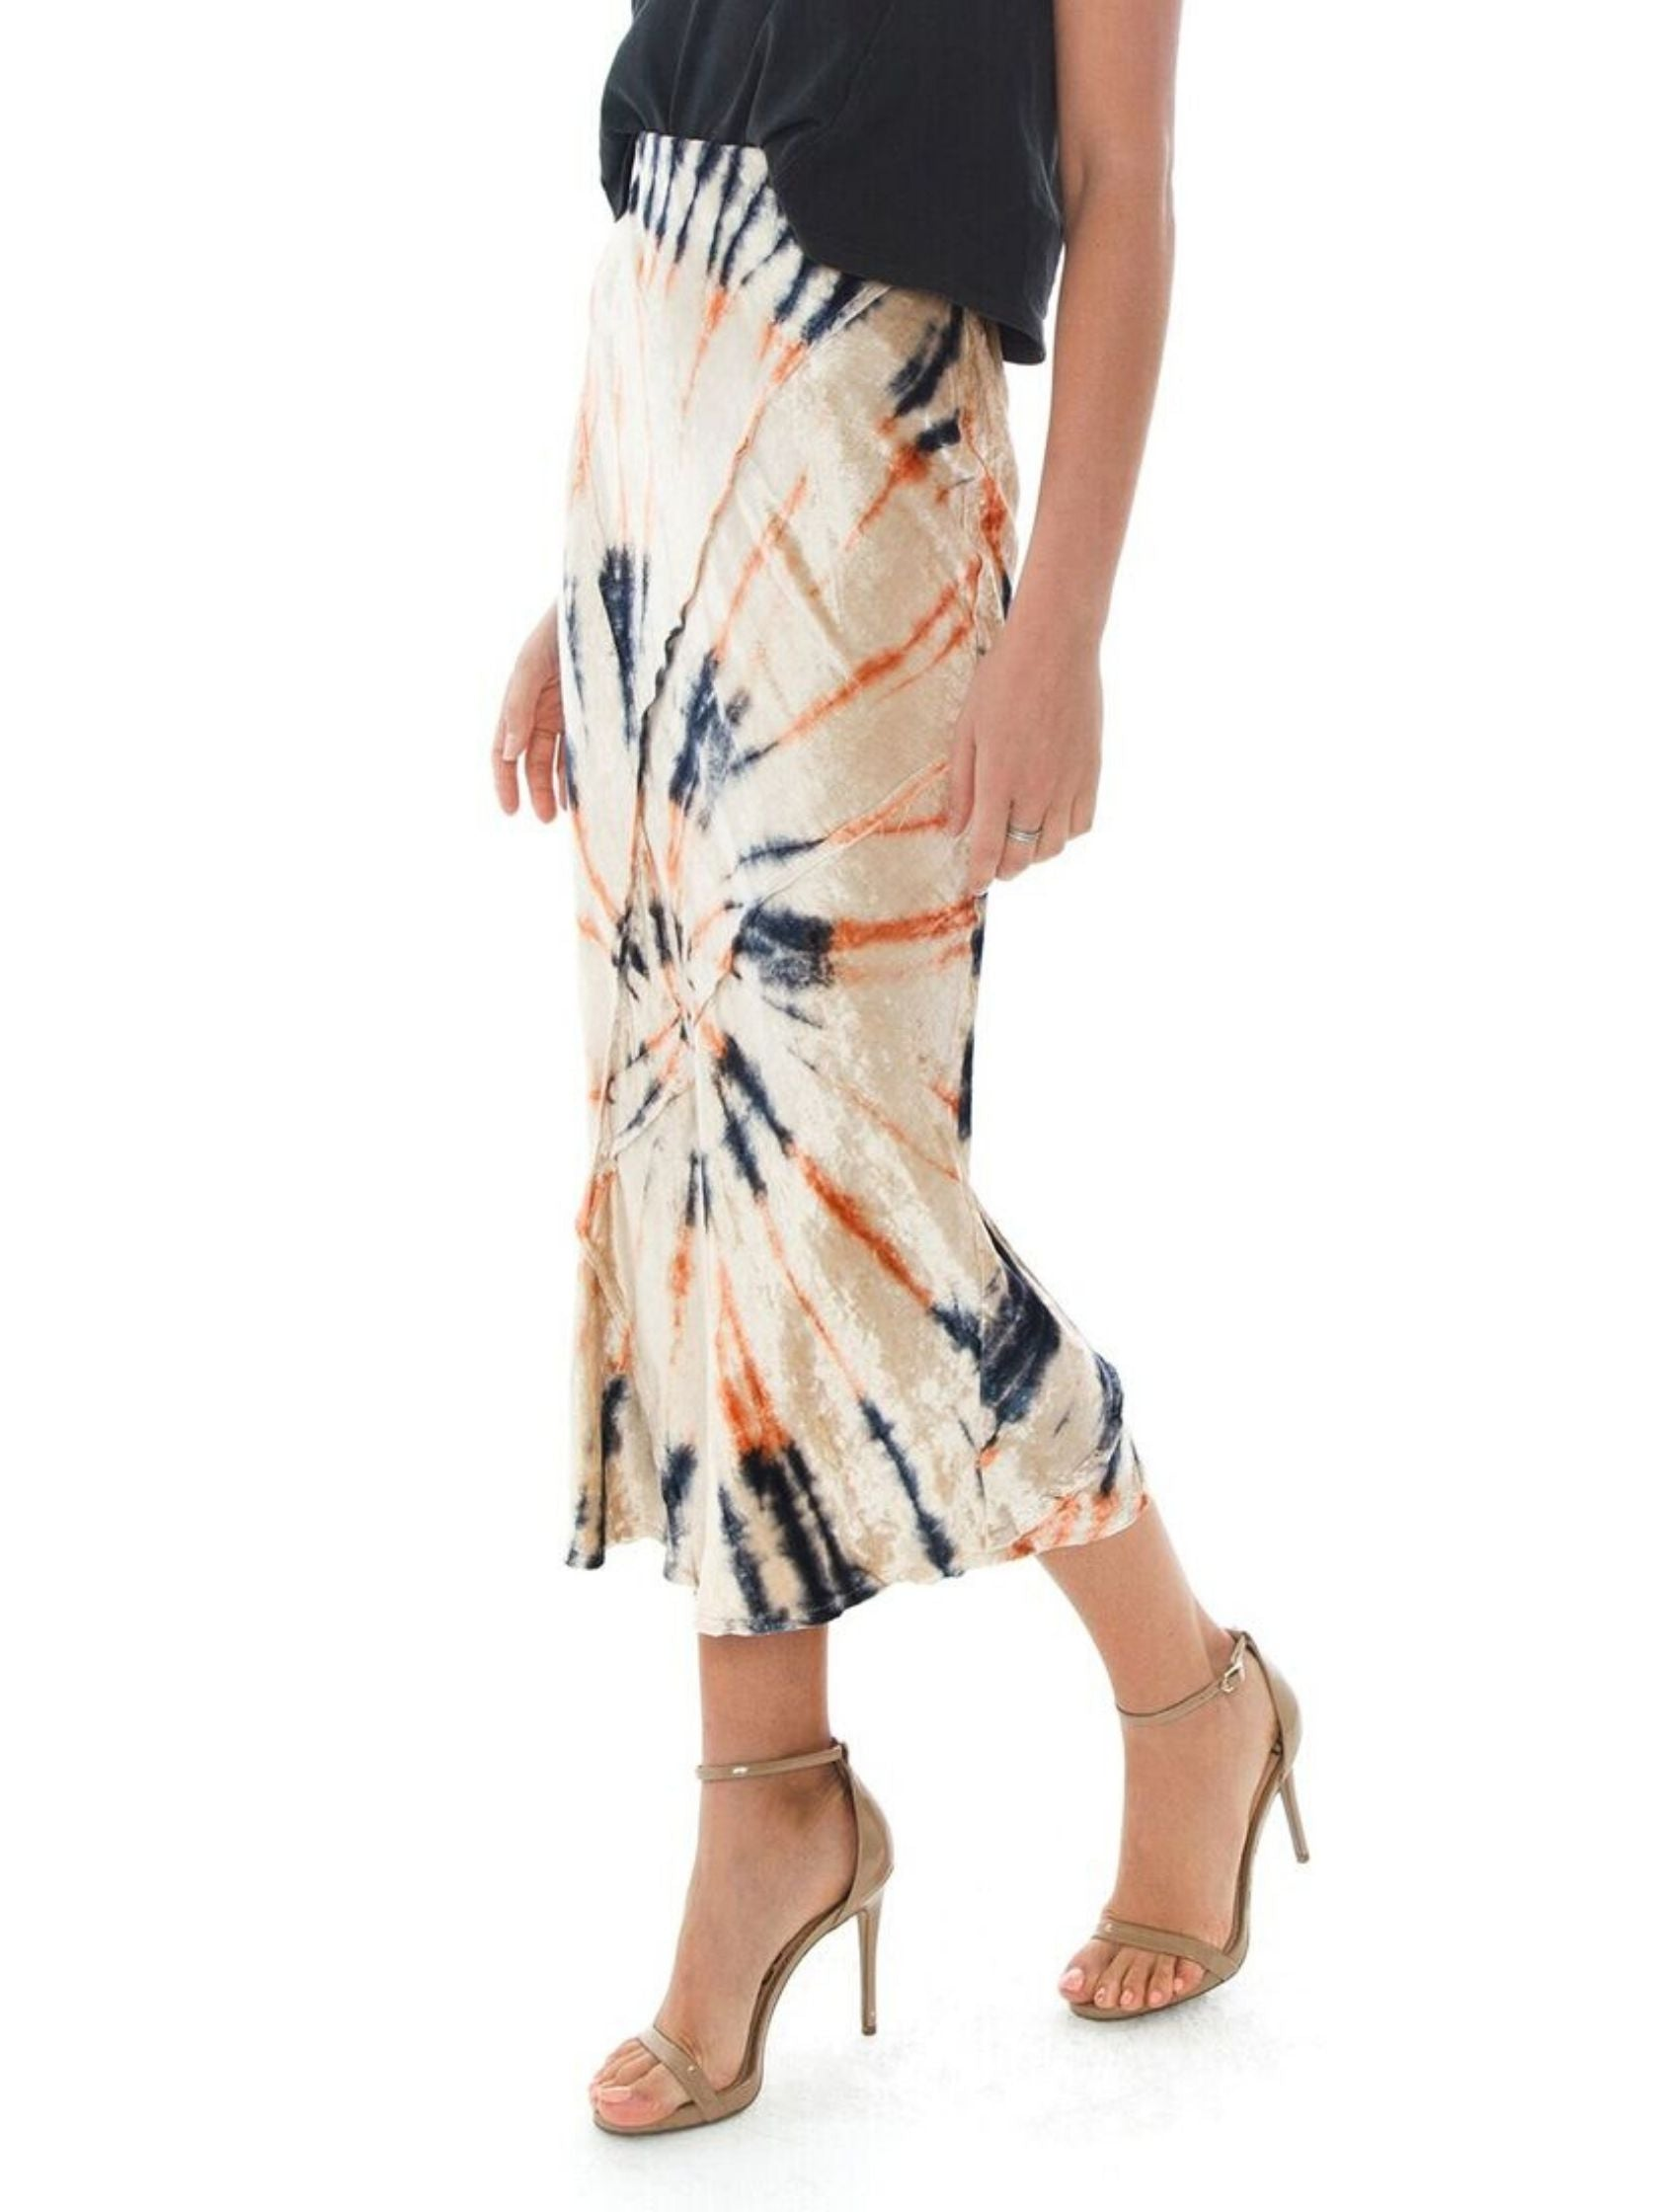 Women wearing a skirt rental from Free People called Serious Swagger Tie Dye Skirt